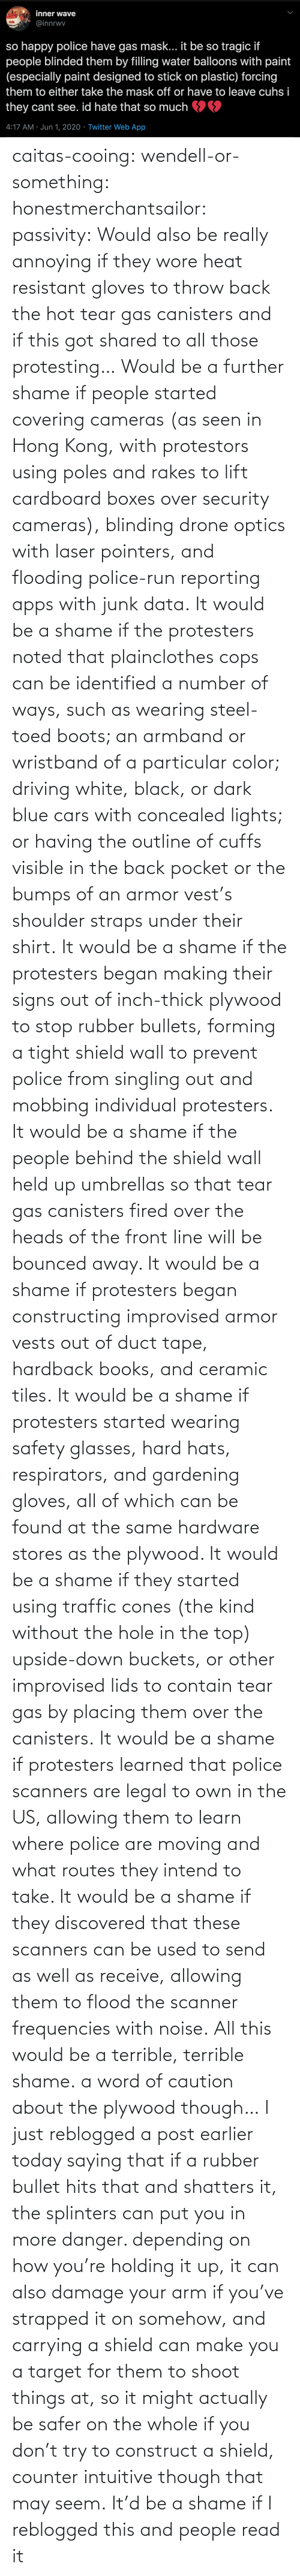 Behind The: caitas-cooing:  wendell-or-something: honestmerchantsailor:  passivity: Would also be really annoying if they wore heat resistant gloves to throw back the hot tear gas canisters and if this got shared to all those protesting… Would be a further shame if people started covering cameras (as seen in Hong Kong, with protestors using poles and rakes to lift cardboard boxes over security cameras), blinding drone optics with laser pointers, and flooding police-run reporting apps with junk data. It would be a shame if the protesters noted that plainclothes cops can be identified a number of ways, such as wearing steel-toed boots; an armband or wristband of a particular color; driving white, black, or dark blue cars with concealed lights; or having the outline of cuffs visible in the back pocket or the bumps of an armor vest's shoulder straps under their shirt. It would be a shame if the protesters began making their signs out of inch-thick plywood to stop rubber bullets, forming a tight shield wall to prevent police from singling out and mobbing individual protesters. It would be a shame if the people behind the shield wall held up umbrellas so that tear gas canisters fired over the heads of the front line will be bounced away. It would be a shame if protesters began constructing improvised armor vests out of duct tape, hardback books, and ceramic tiles. It would be a shame if protesters started wearing safety glasses, hard hats, respirators, and gardening gloves, all of which can be found at the same hardware stores as the plywood. It would be a shame if they started using traffic cones (the kind without the hole in the top) upside-down buckets, or other improvised lids to contain tear gas by placing them over the canisters. It would be a shame if protesters learned that police scanners are legal to own in the US, allowing them to learn where police are moving and what routes they intend to take. It would be a shame if they discovered that these scanners can be used to send as well as receive, allowing them to flood the scanner frequencies with noise. All this would be a terrible, terrible shame.    a word of caution about the plywood though… I just reblogged a post earlier today saying that if a rubber bullet hits that and shatters it, the splinters can put you in more danger. depending on how you're holding it up, it can also damage your arm if you've strapped it on somehow, and carrying a shield can make you a target for them to shoot things at, so it might actually be safer on the whole if you don't try to construct a shield, counter intuitive though that may seem.    It'd be a shame if I reblogged this and people read it